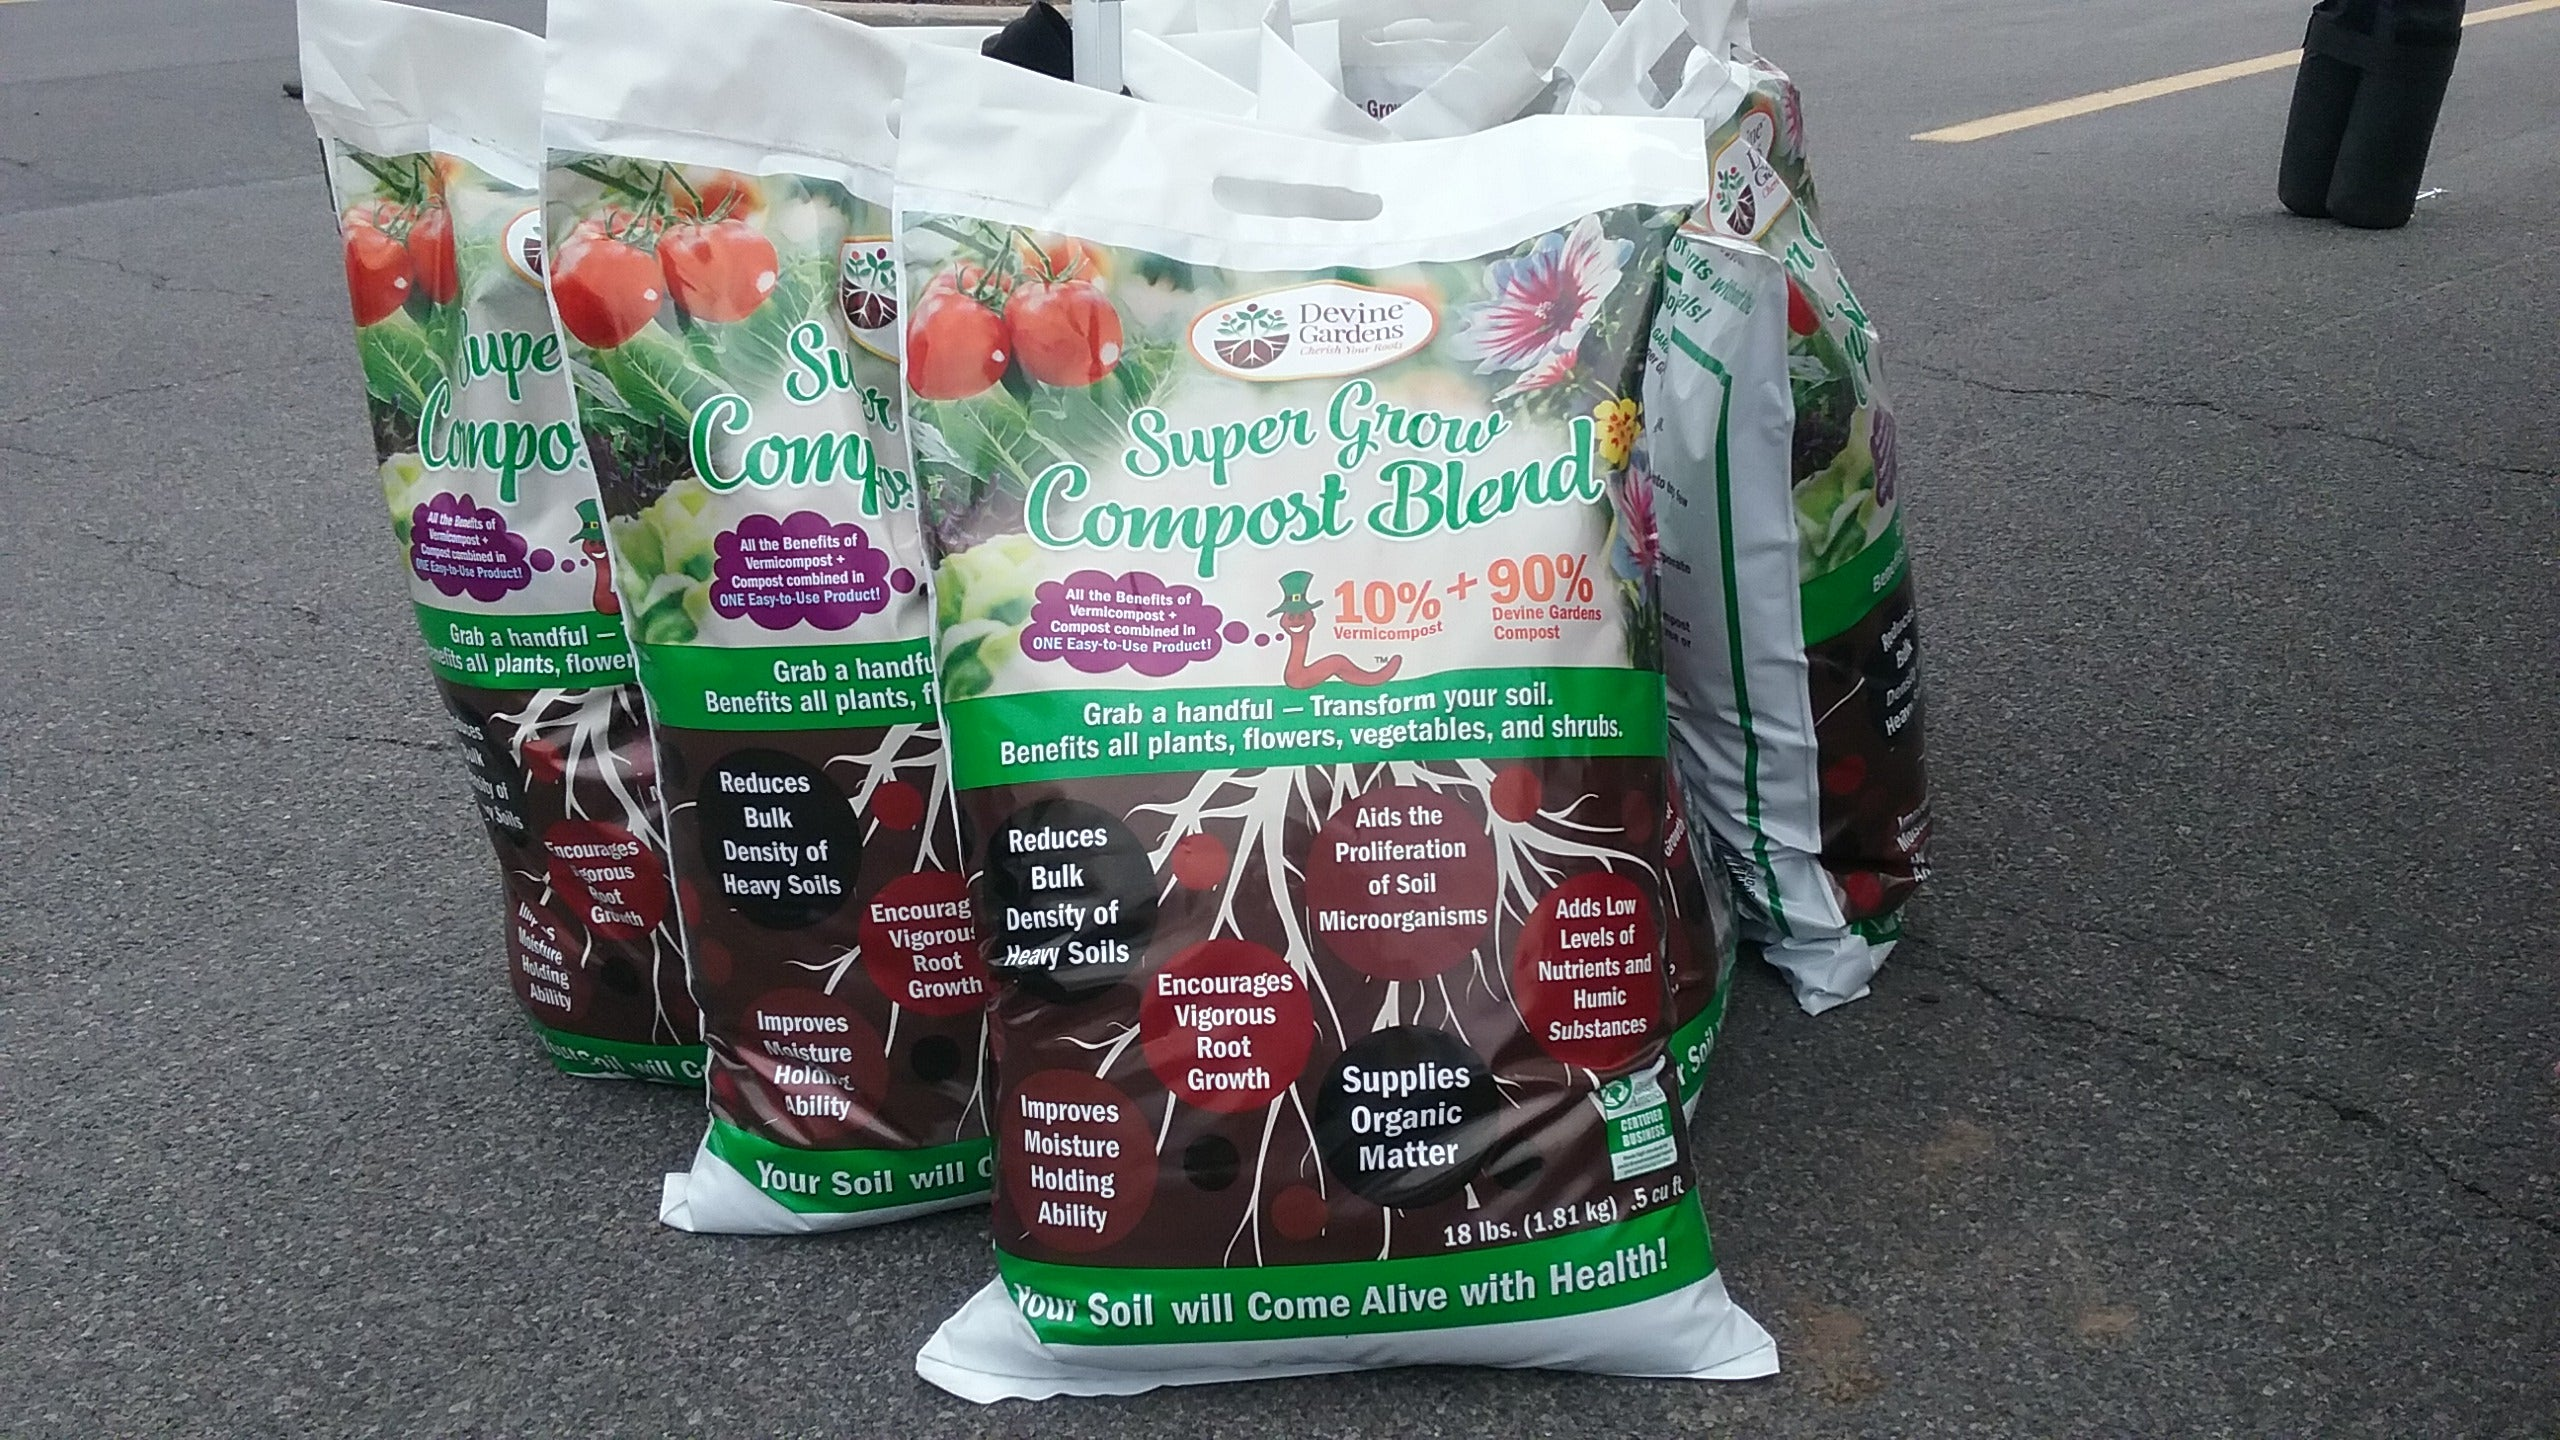 Super Grow Compost Blend